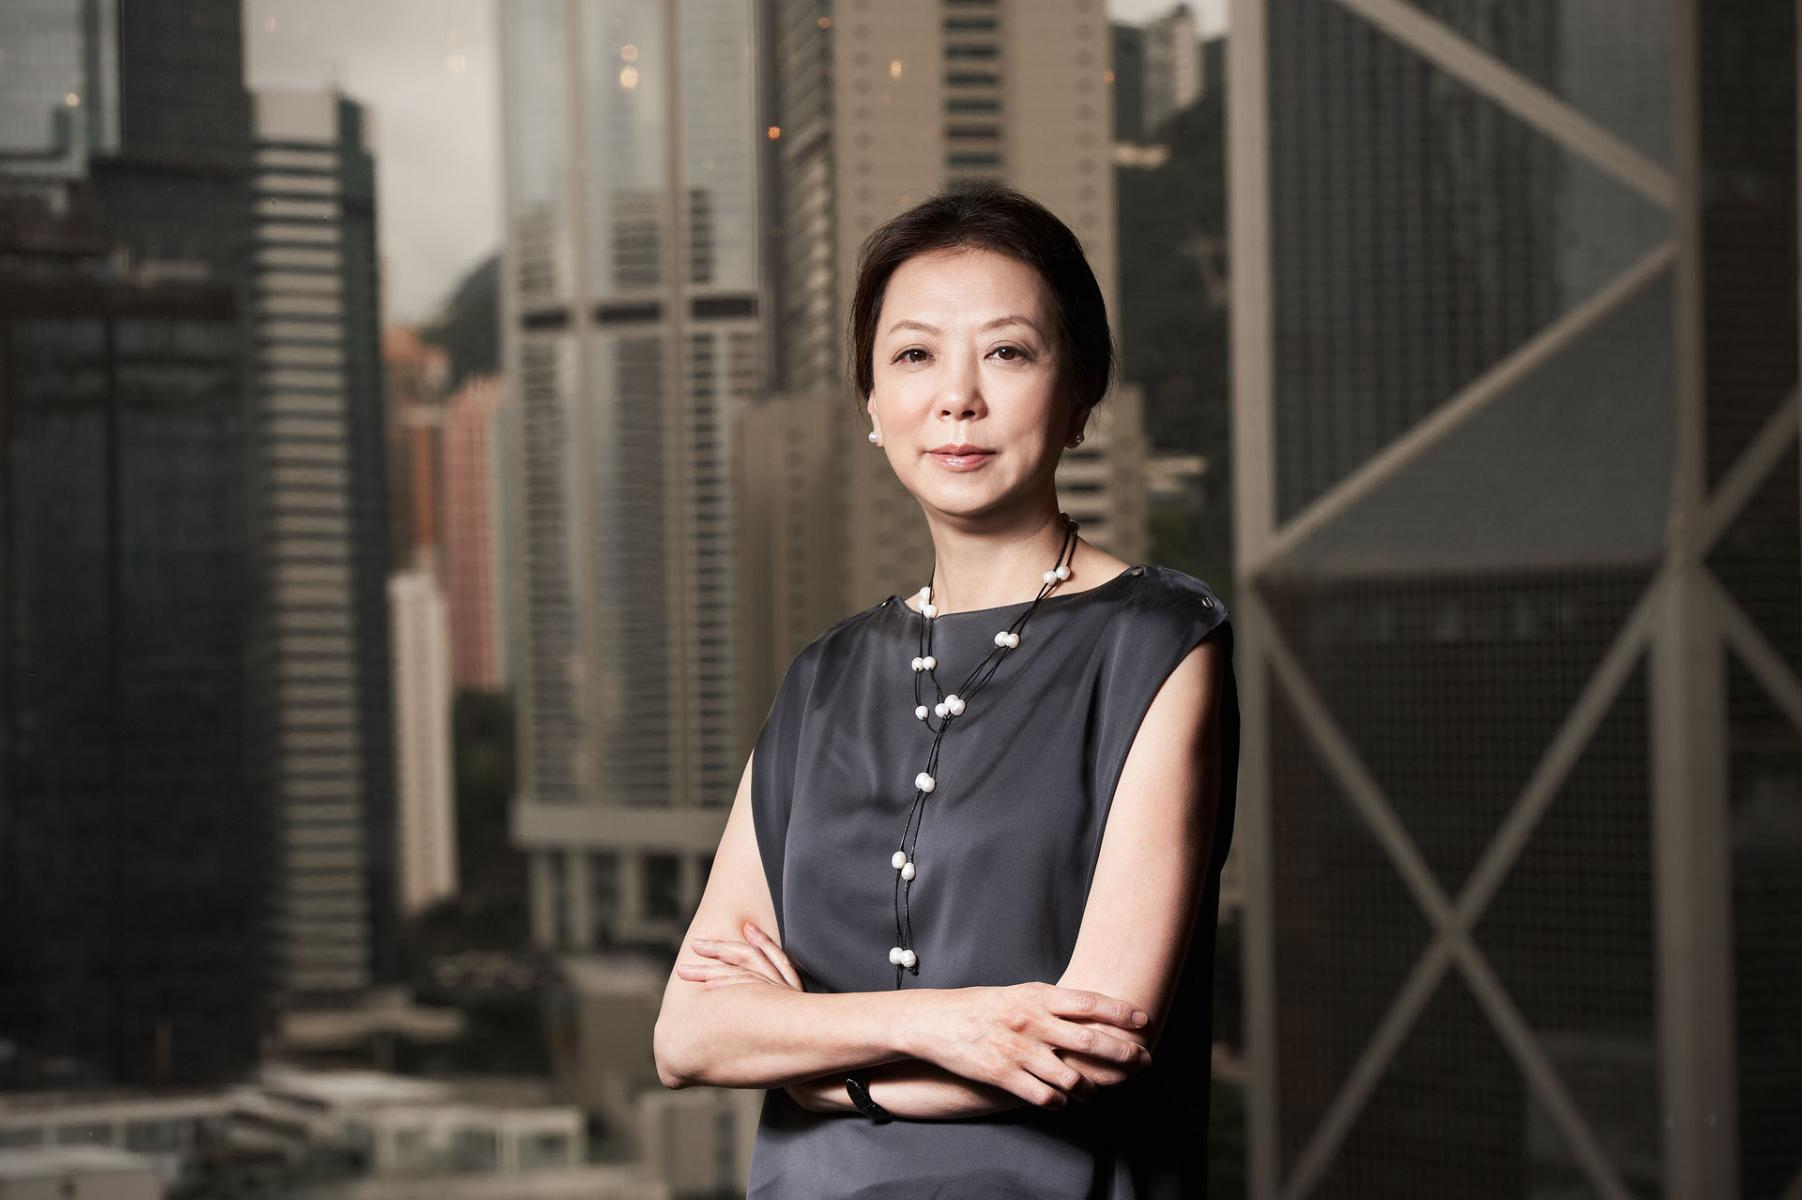 Ms. Wang Yannan, Director and President of China Guardian Auction House